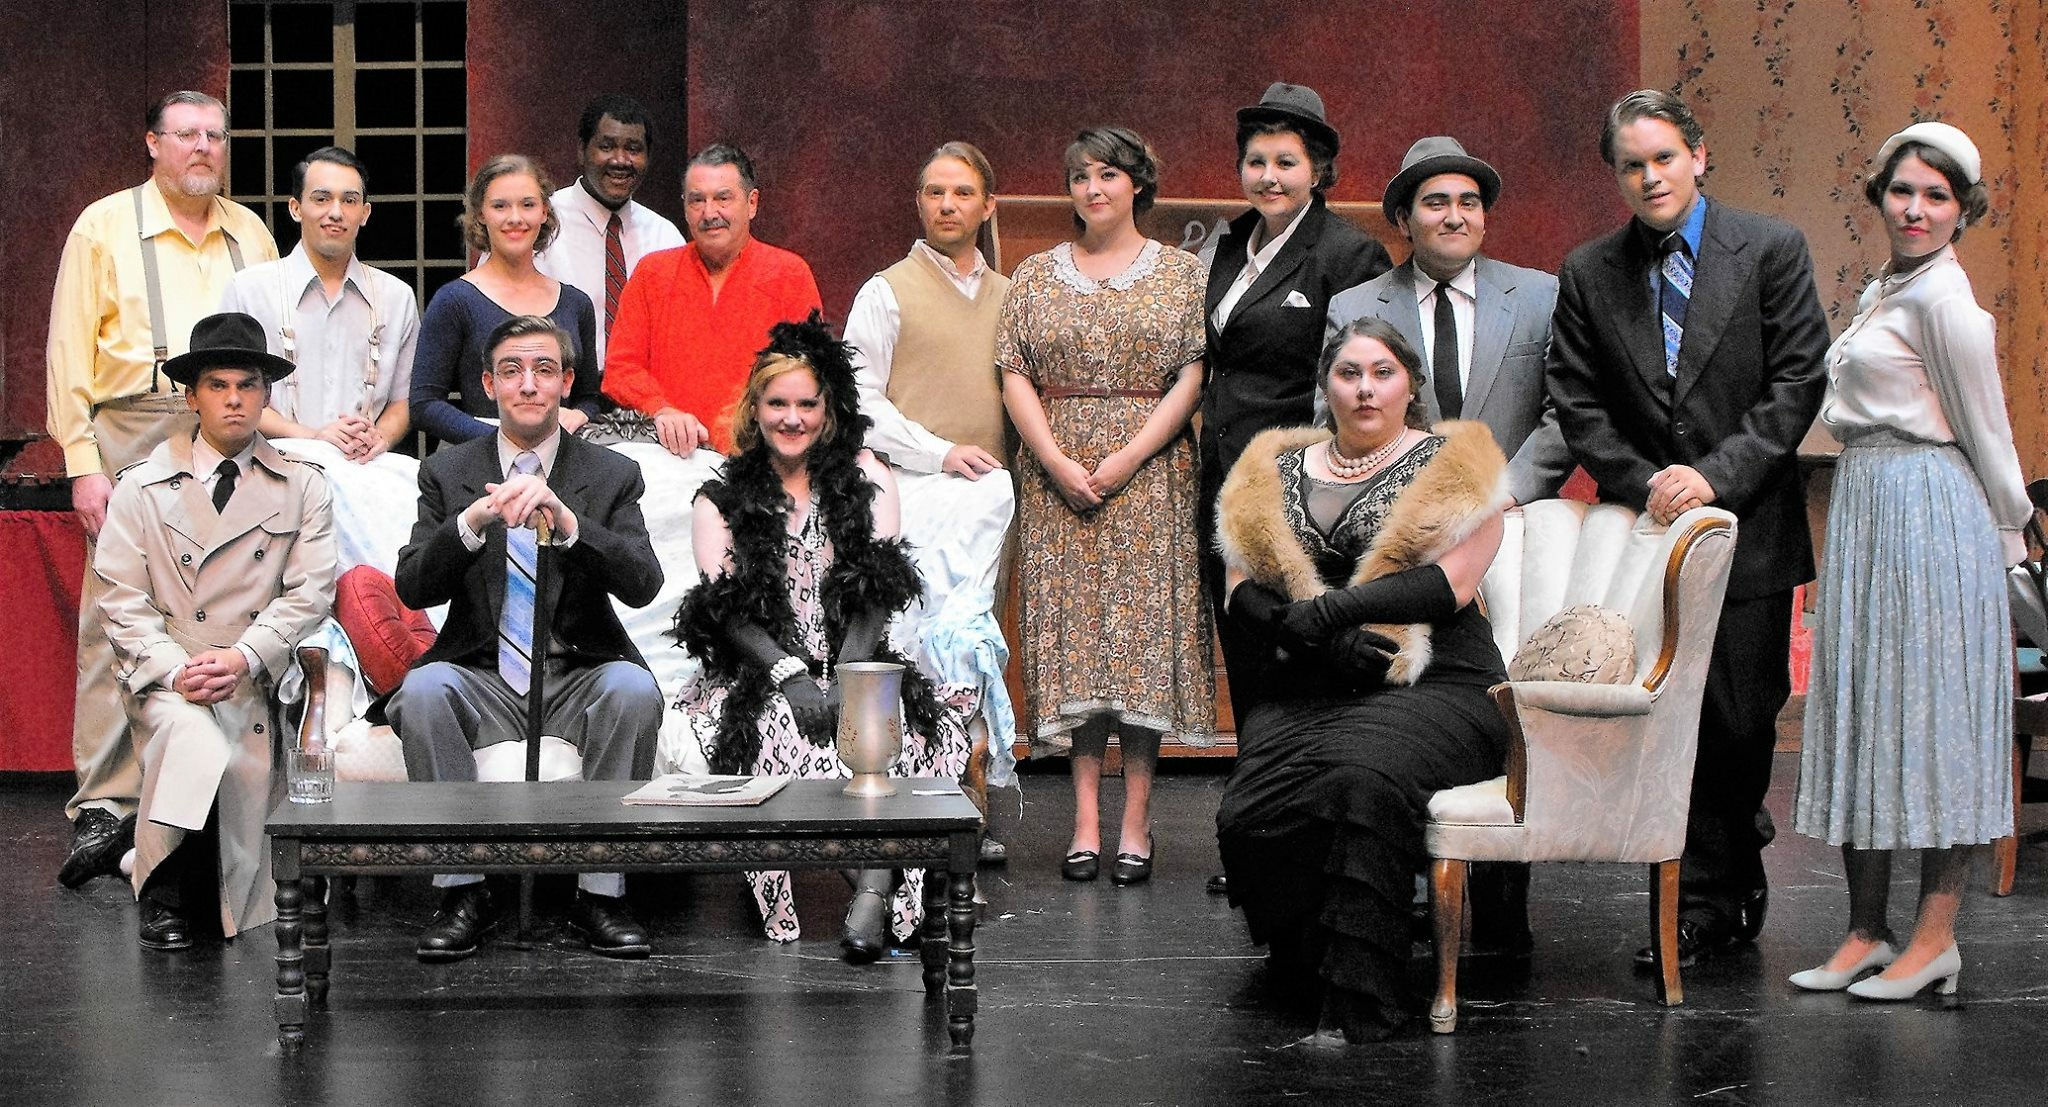 Entire Cast for 'You Can't Take It With You' performed by Tarleton State University